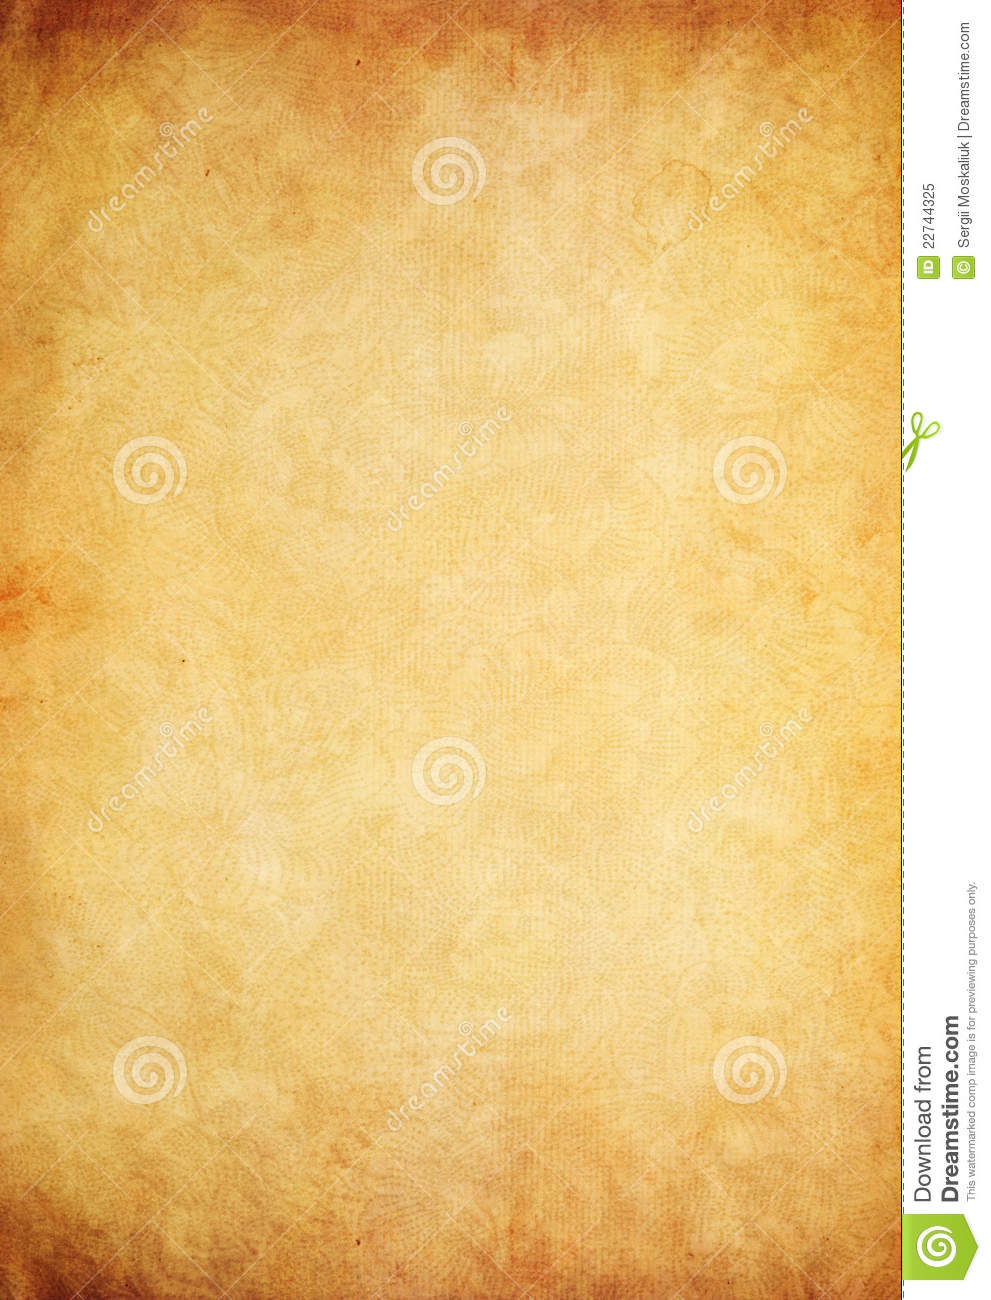 Old paper parchment as grunge background